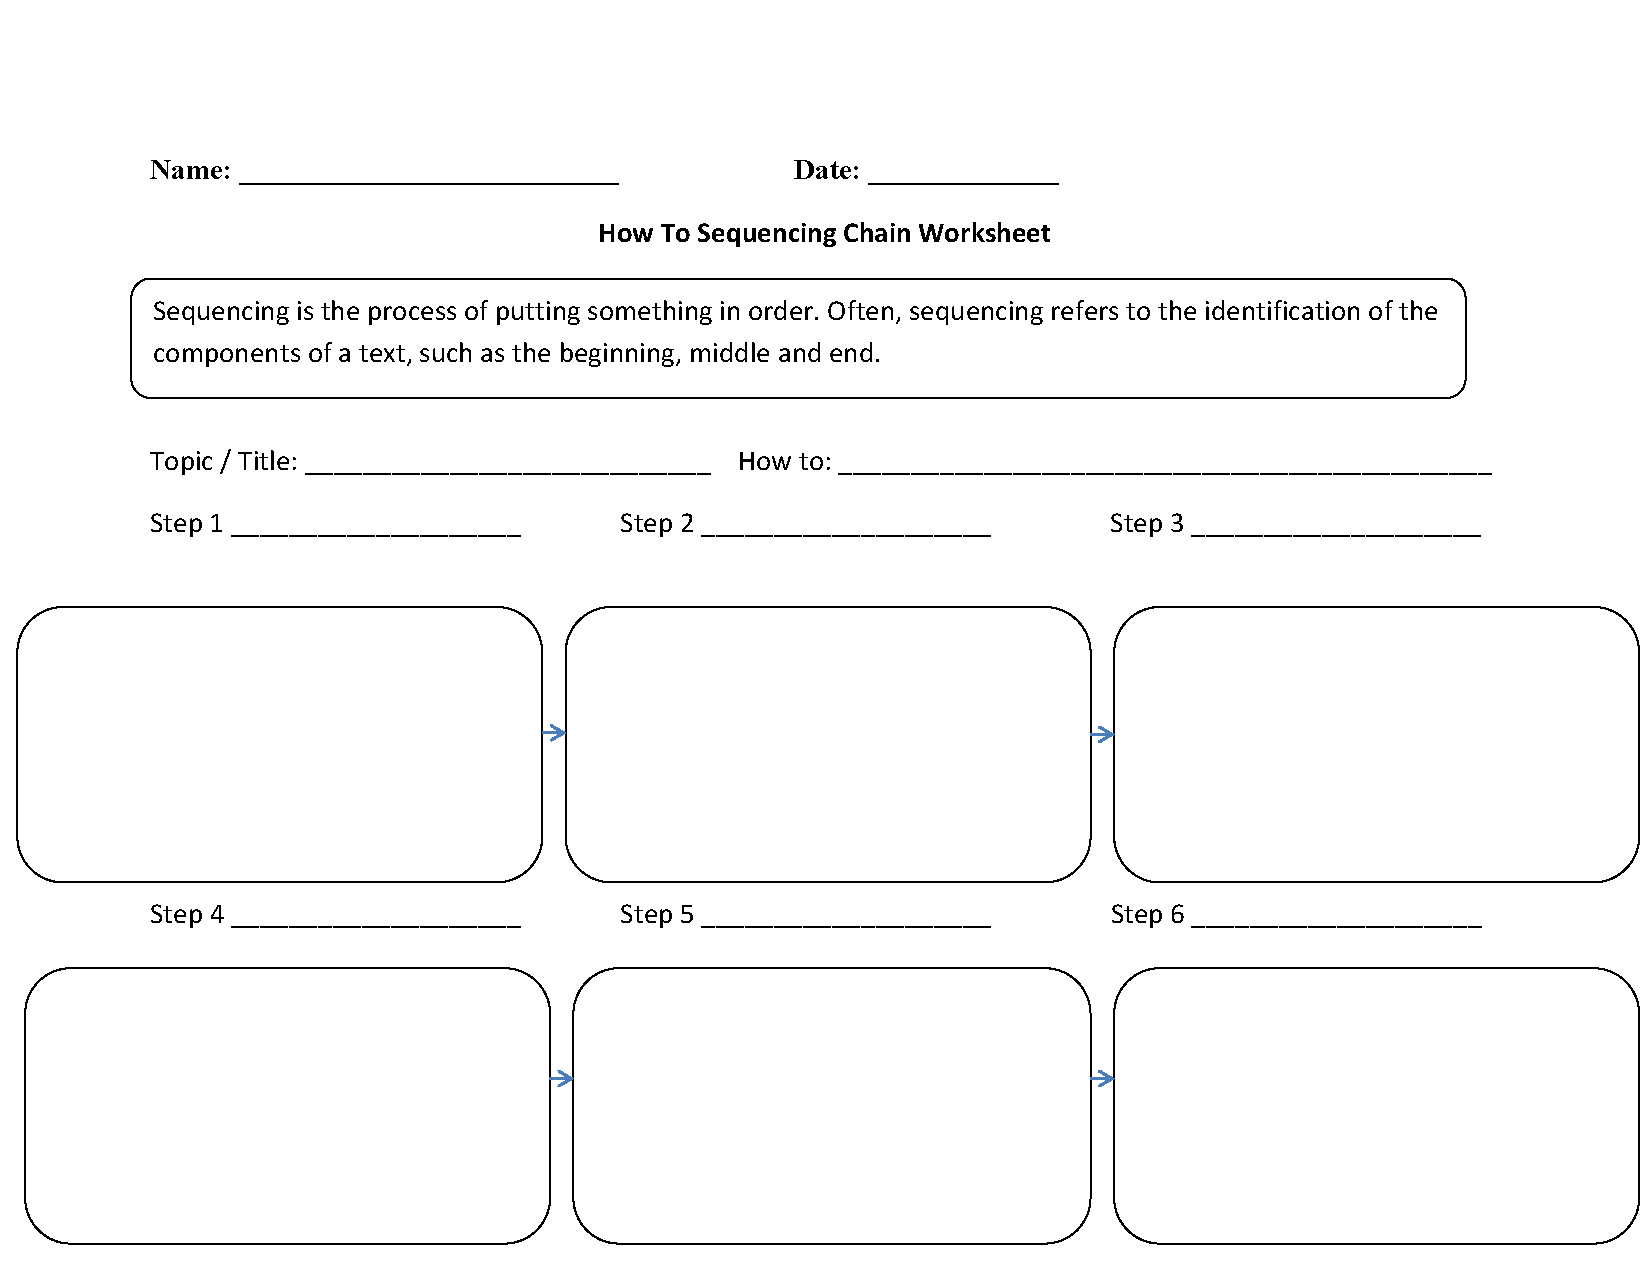 worksheet Aa Step 6 Worksheet aa step 6 worksheet resultinfos sequencing worksheets for middle school free library